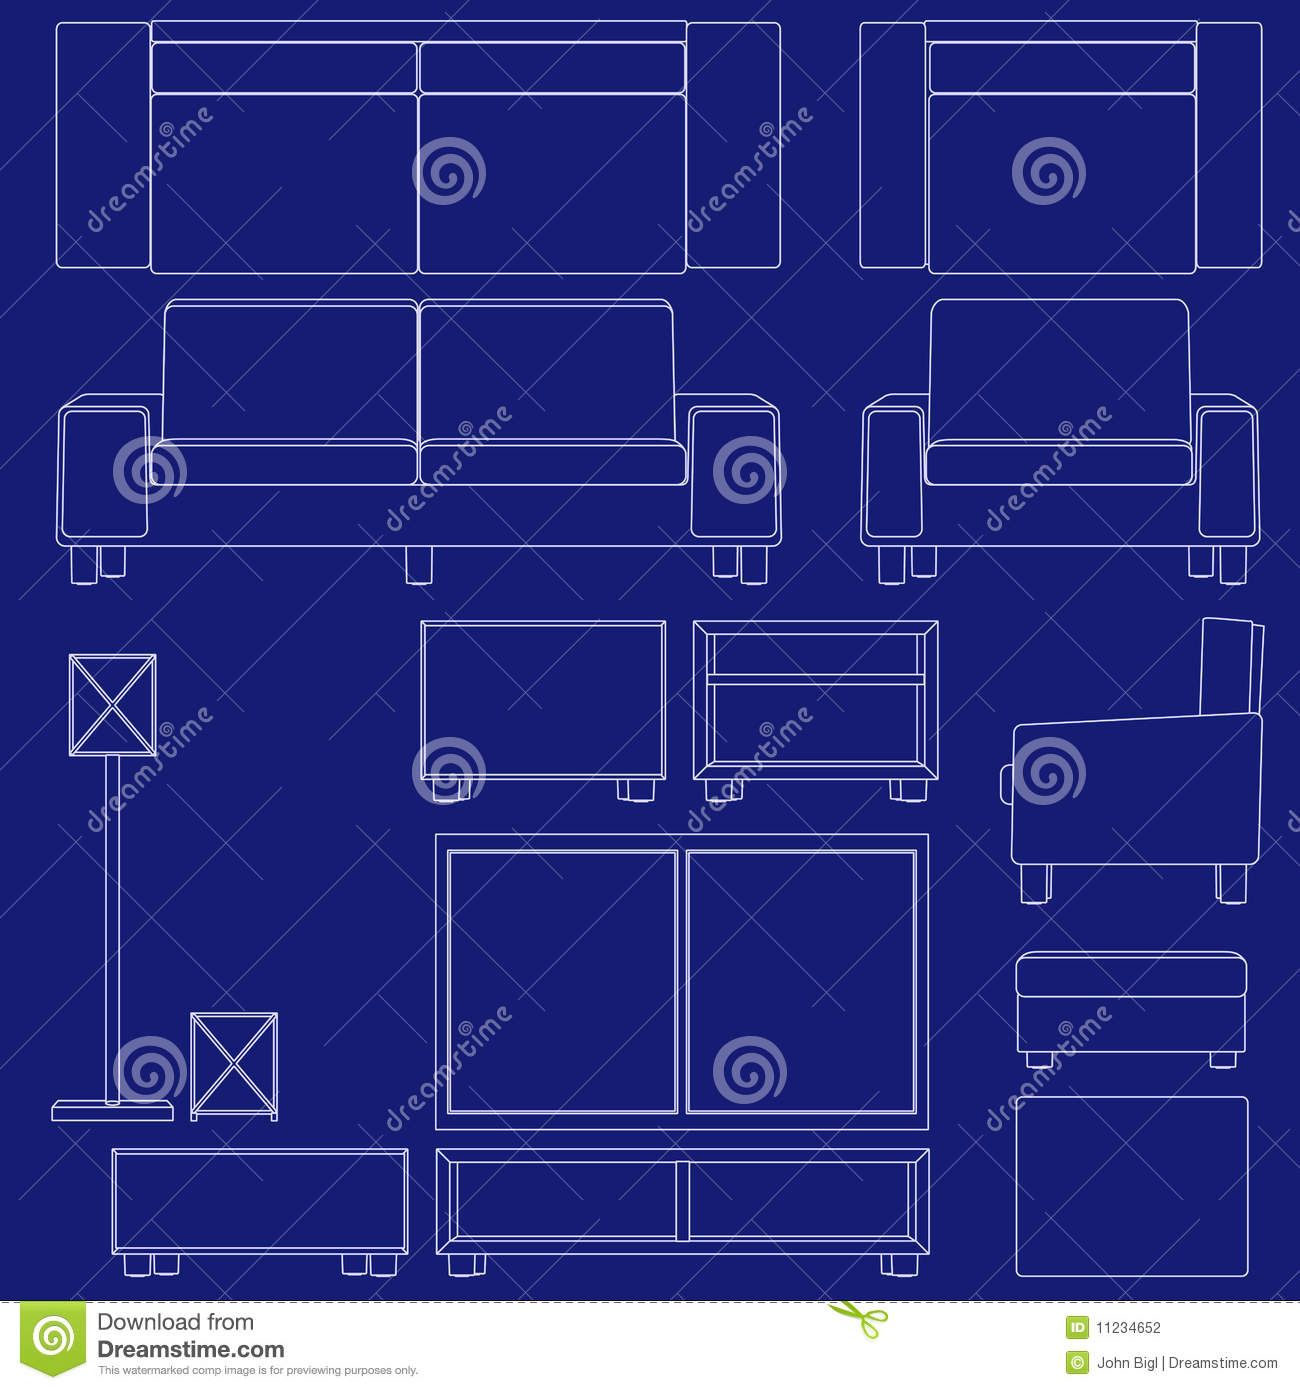 Blueprint Living Room Furniture Stock Vector Illustration Of Couch